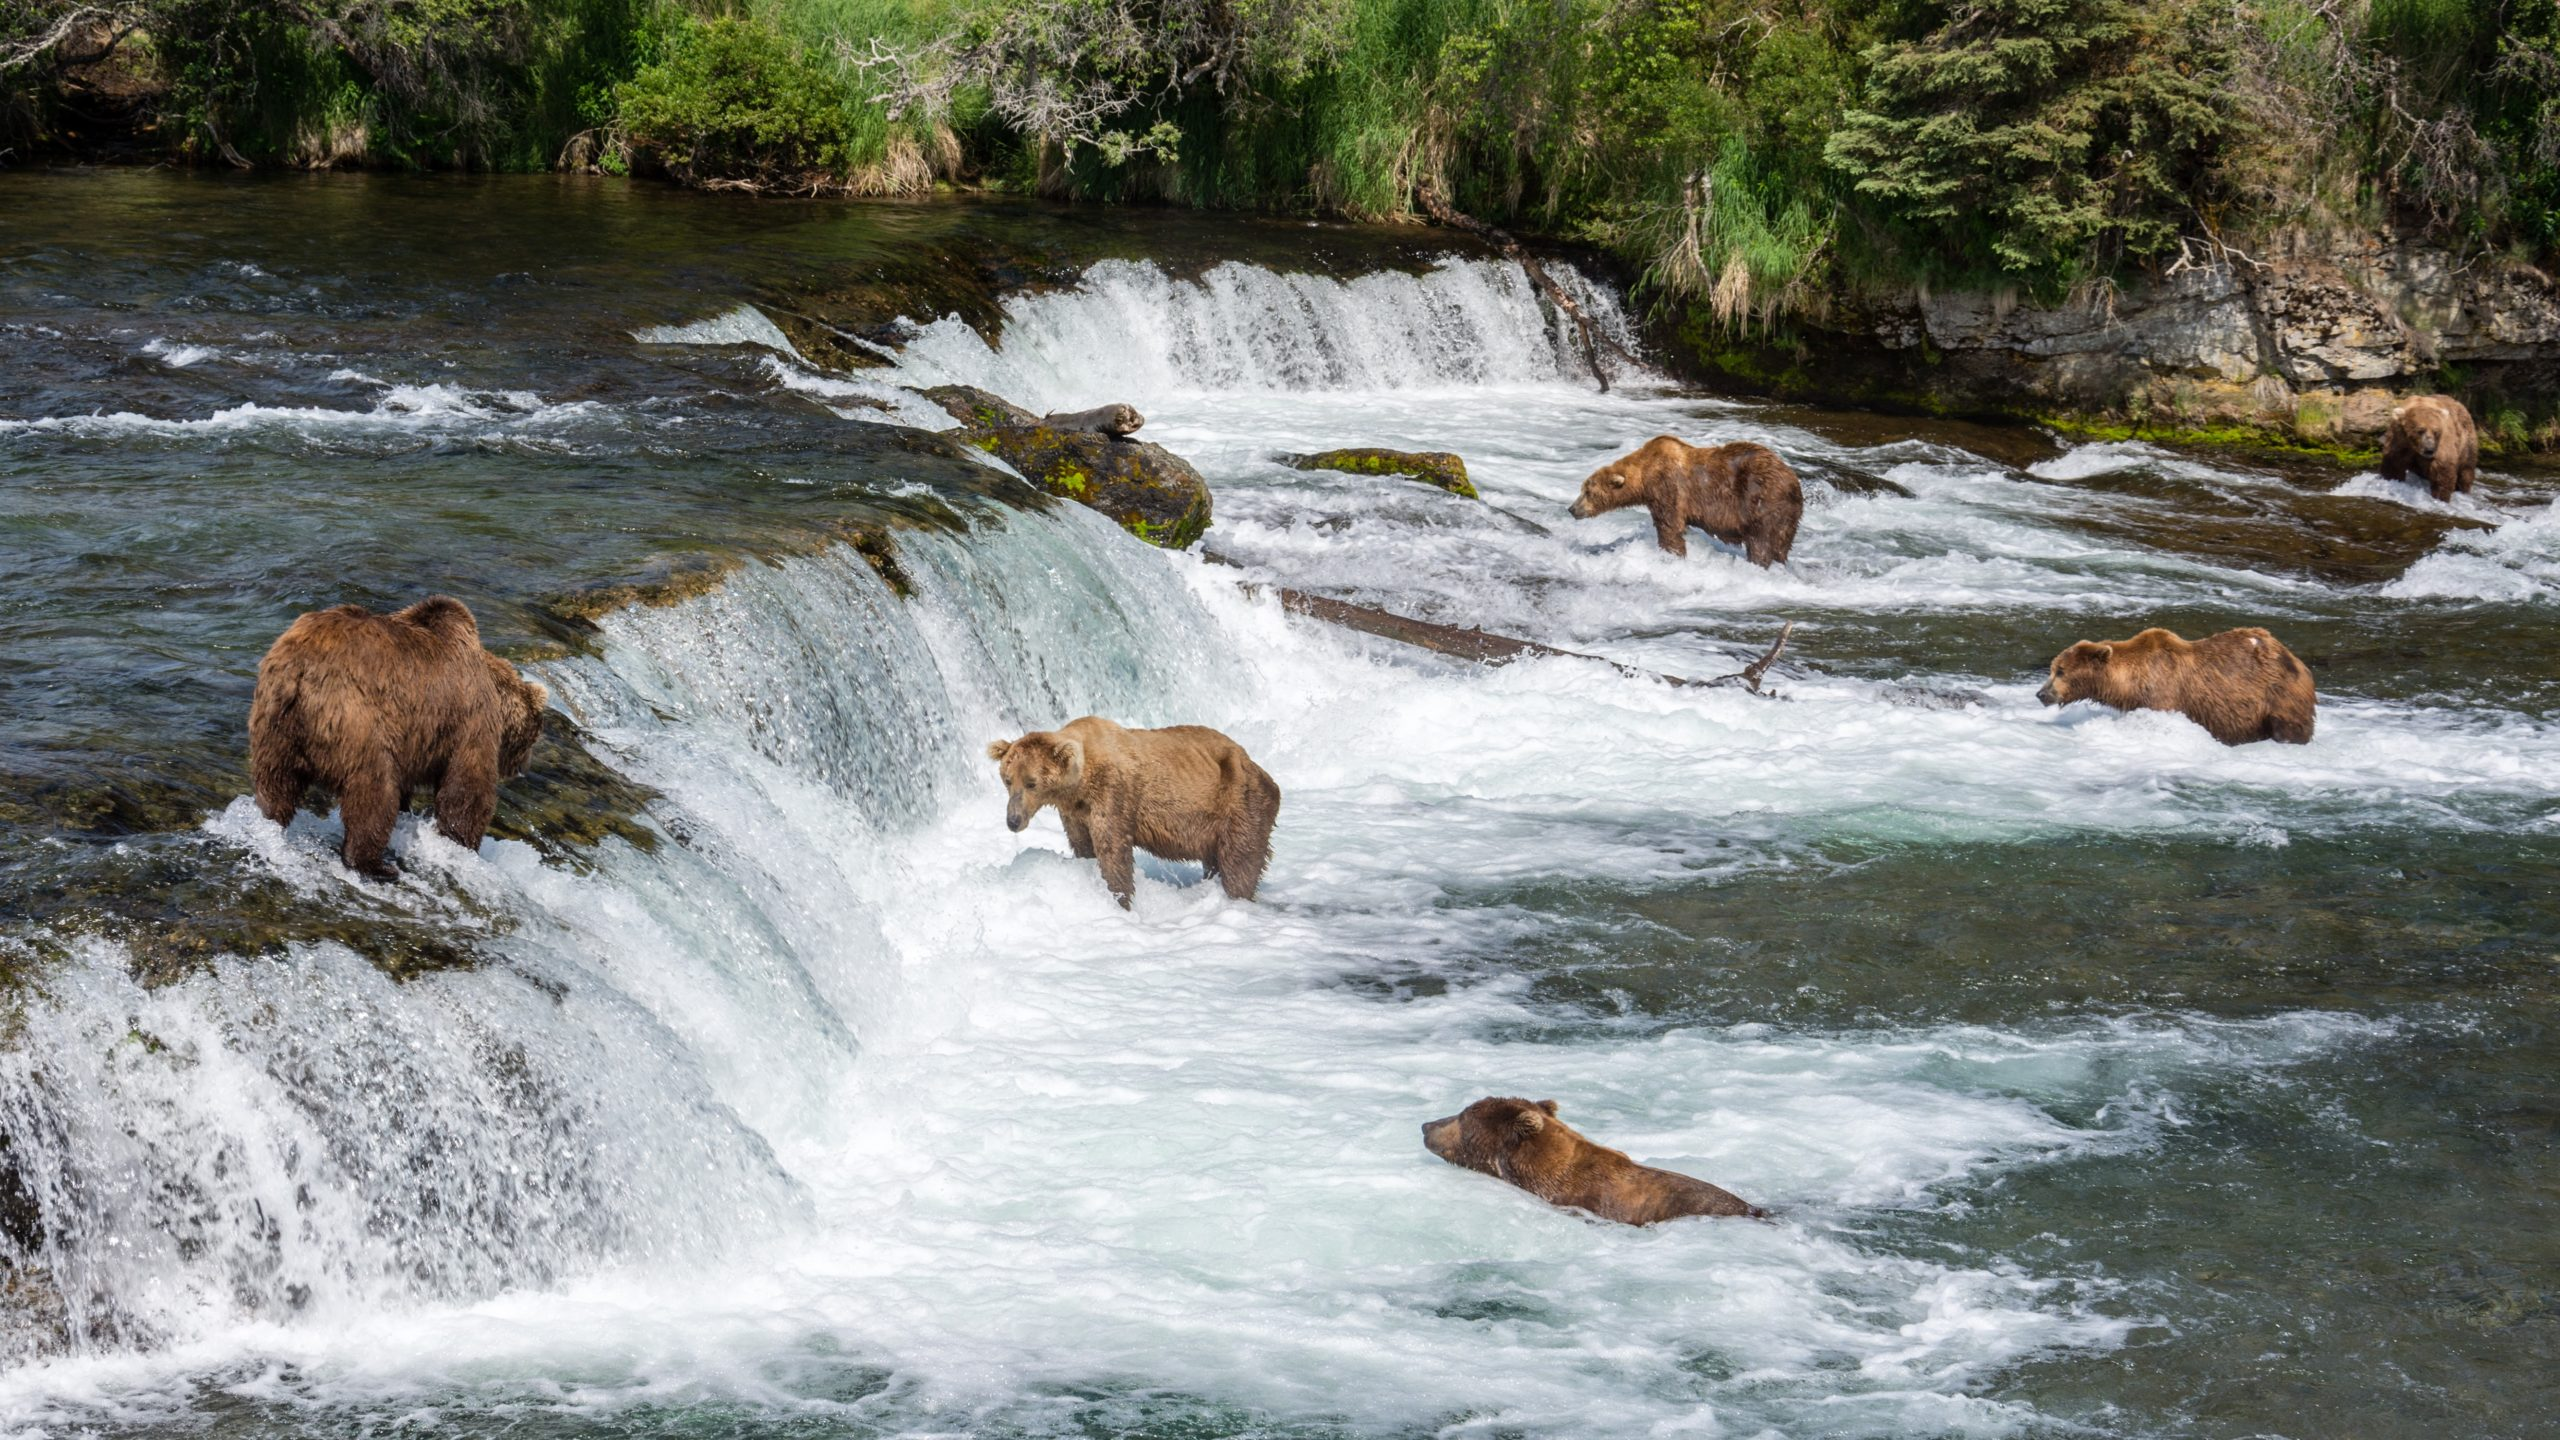 Grizzly Brown Bears in a river feeding on salmon at Brooks Falls, Katmai National Park, Alaska